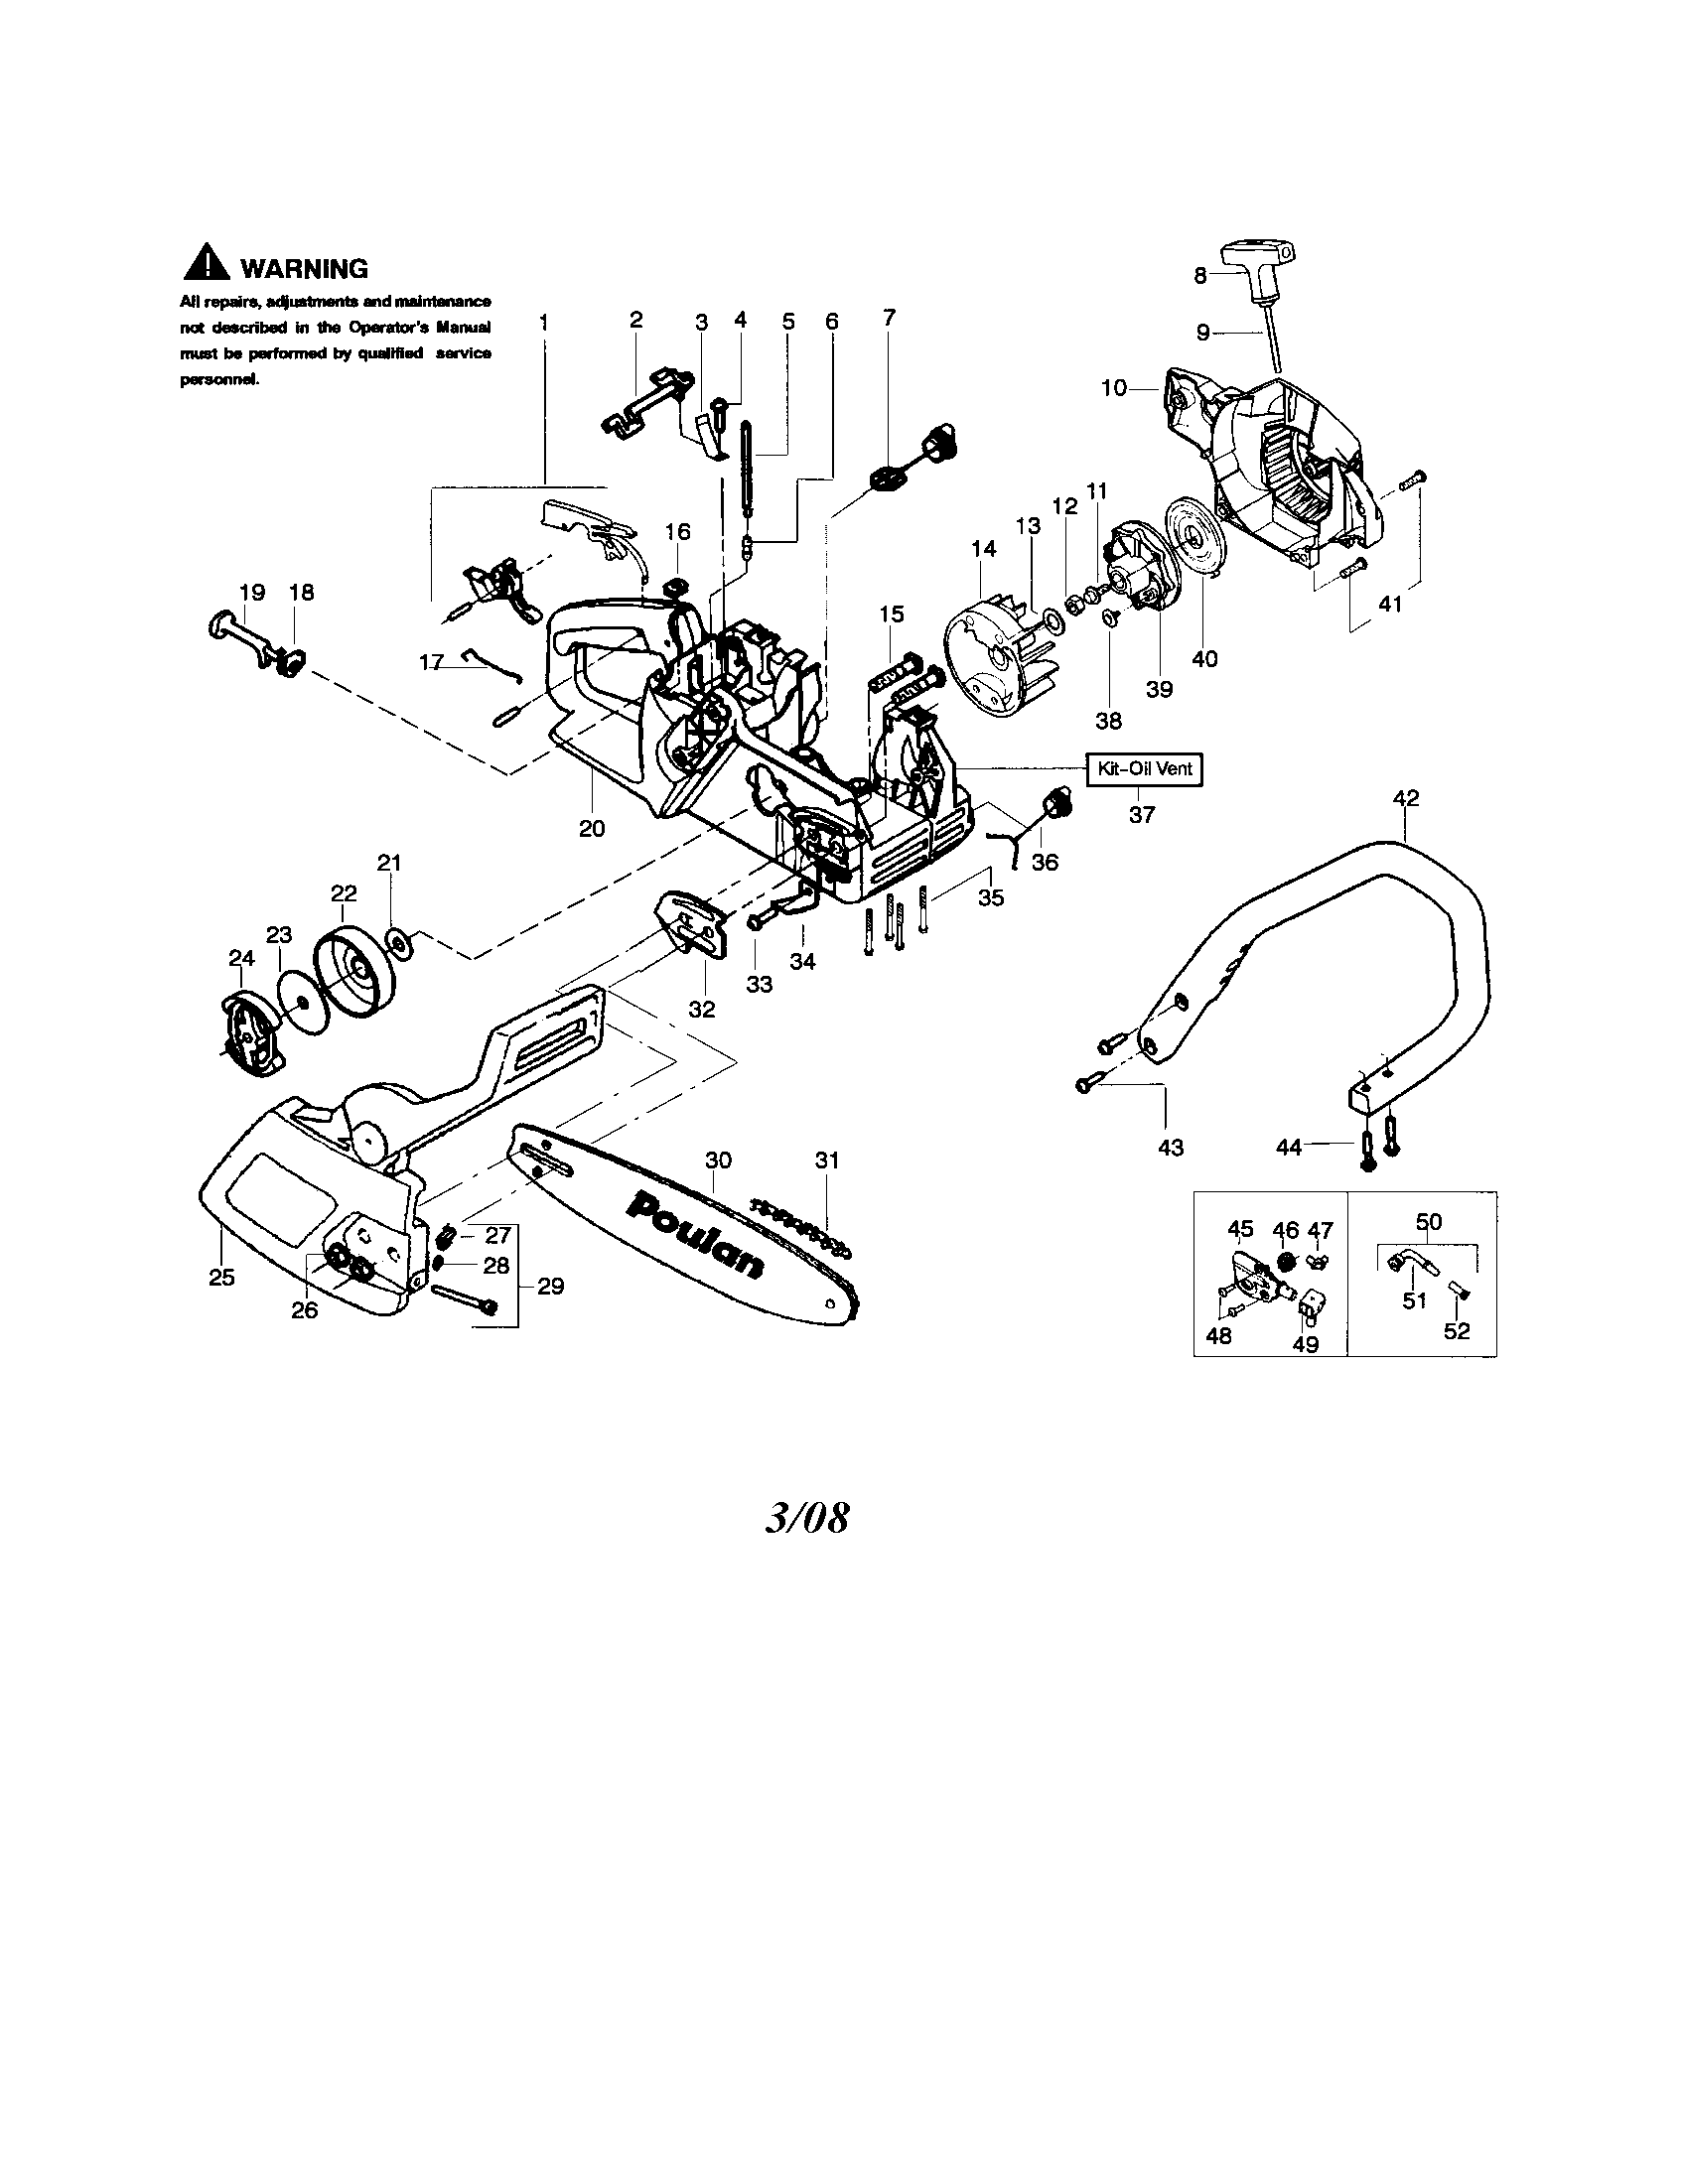 Poulan P3314 Fuel Line Diagram, Poulan, Free Engine Image